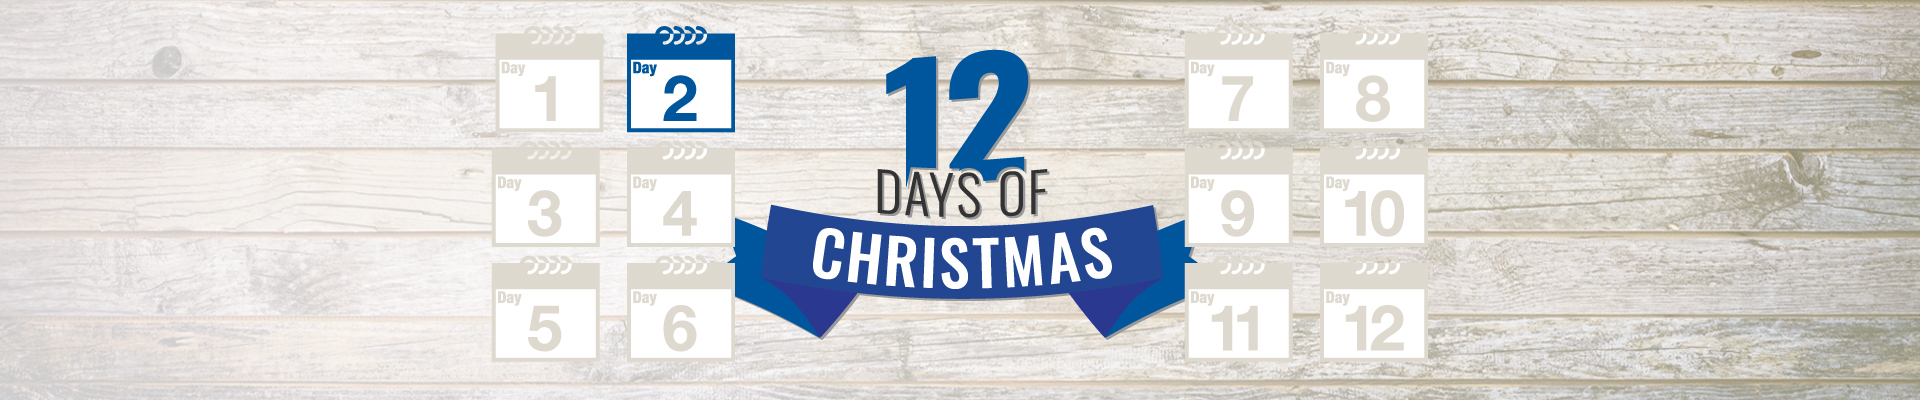 12 Days of Christmas Deals - 2017-12-14